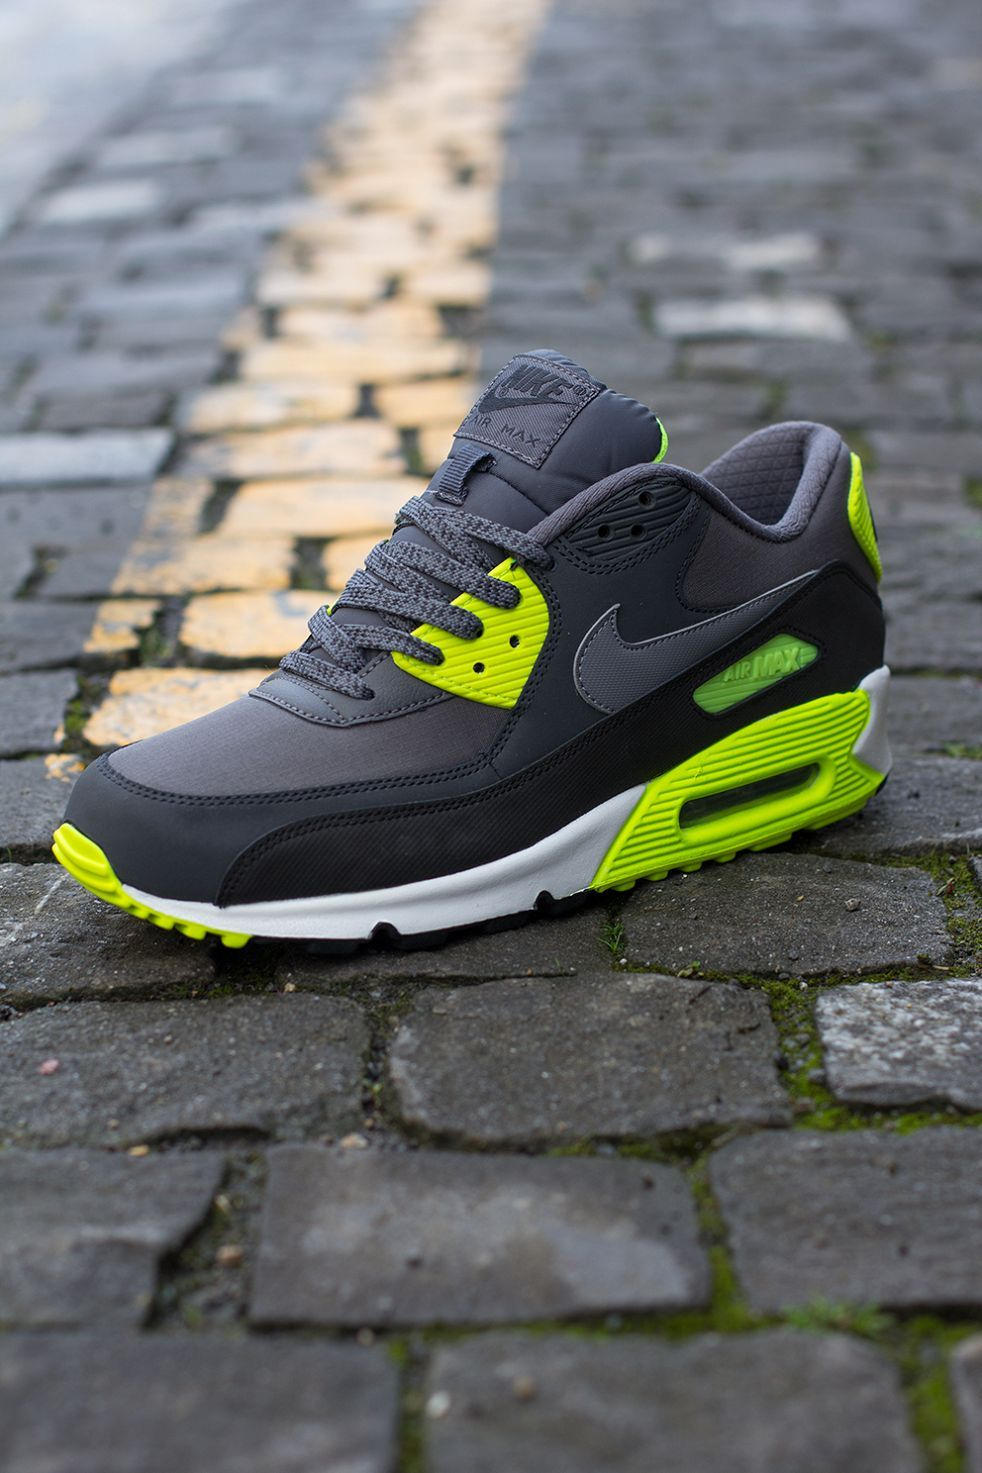 autor Currículum sabiduría  Nike running shoes 2016 fashion style,shop our new collection,limited  editions only $21.9!This offer is subject t…   Nike shoes women, Nike free  shoes, Nike air max